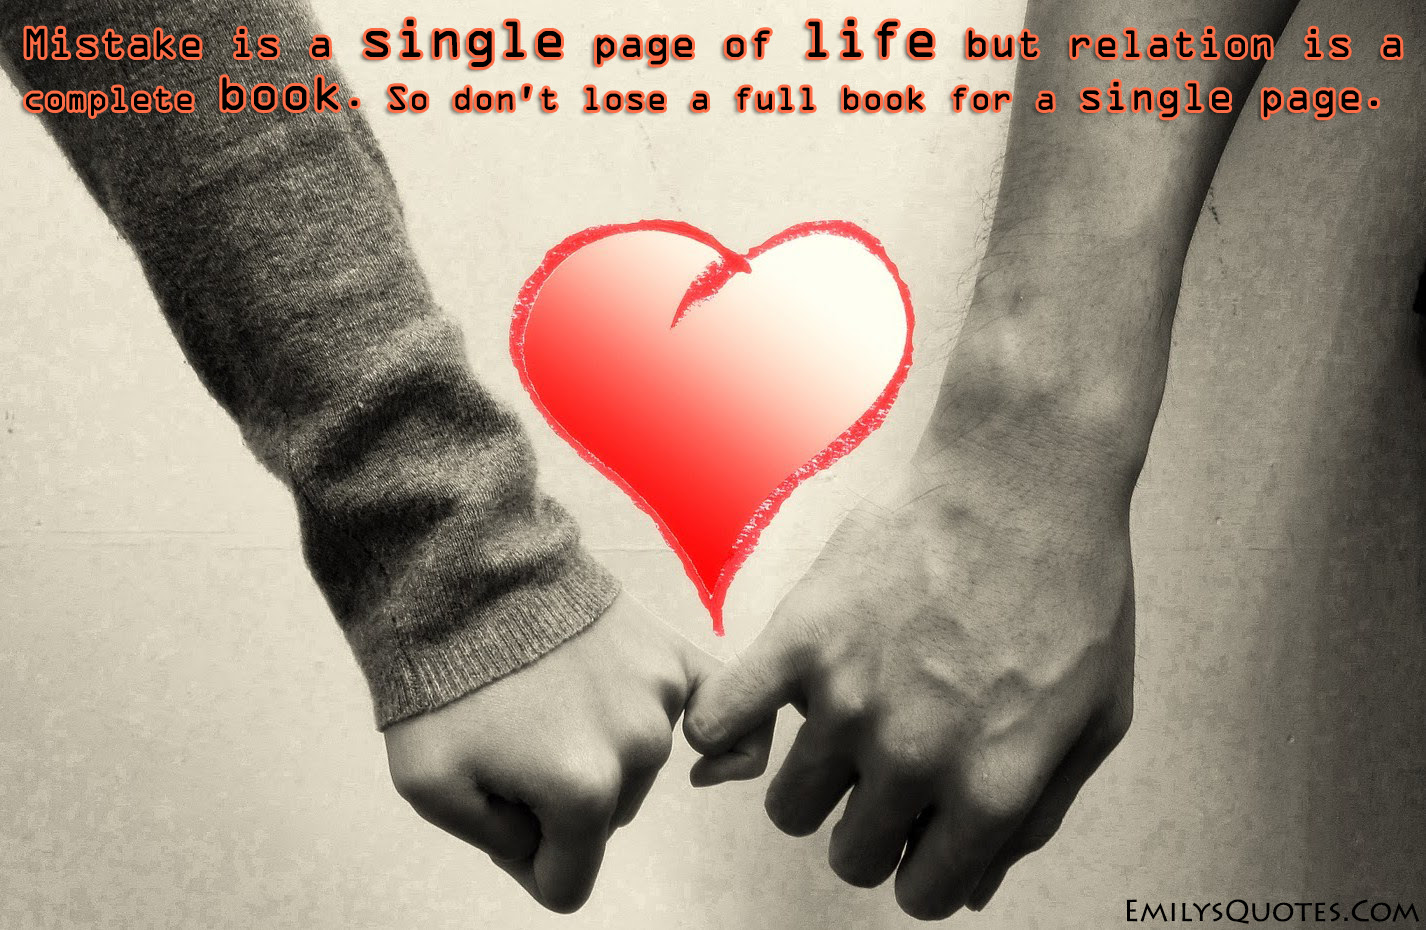 Mistake Is A Single Page Of Life But Relation Is A Complete Book